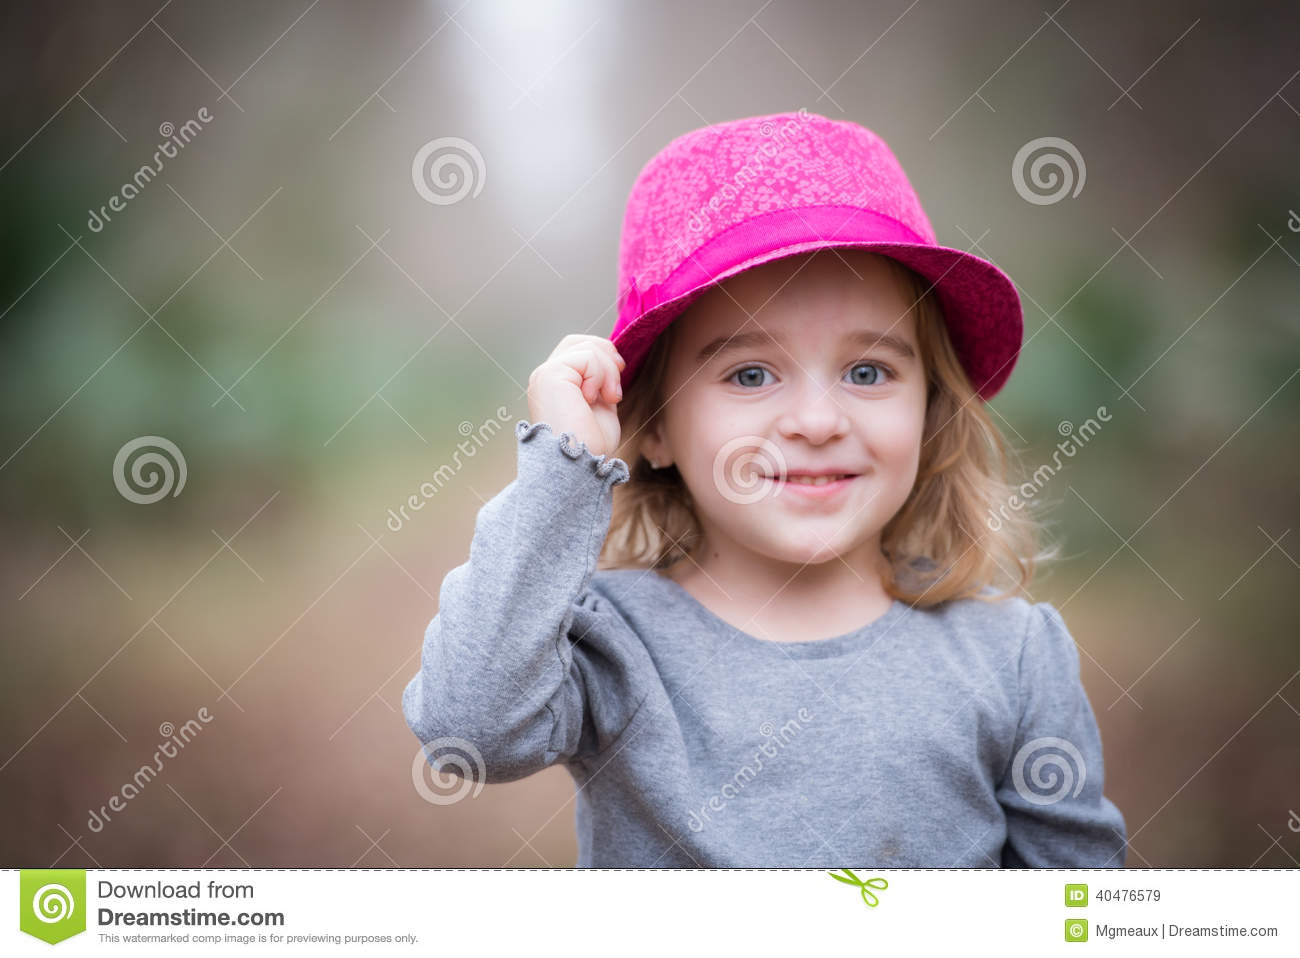 Girl in the pink fedora